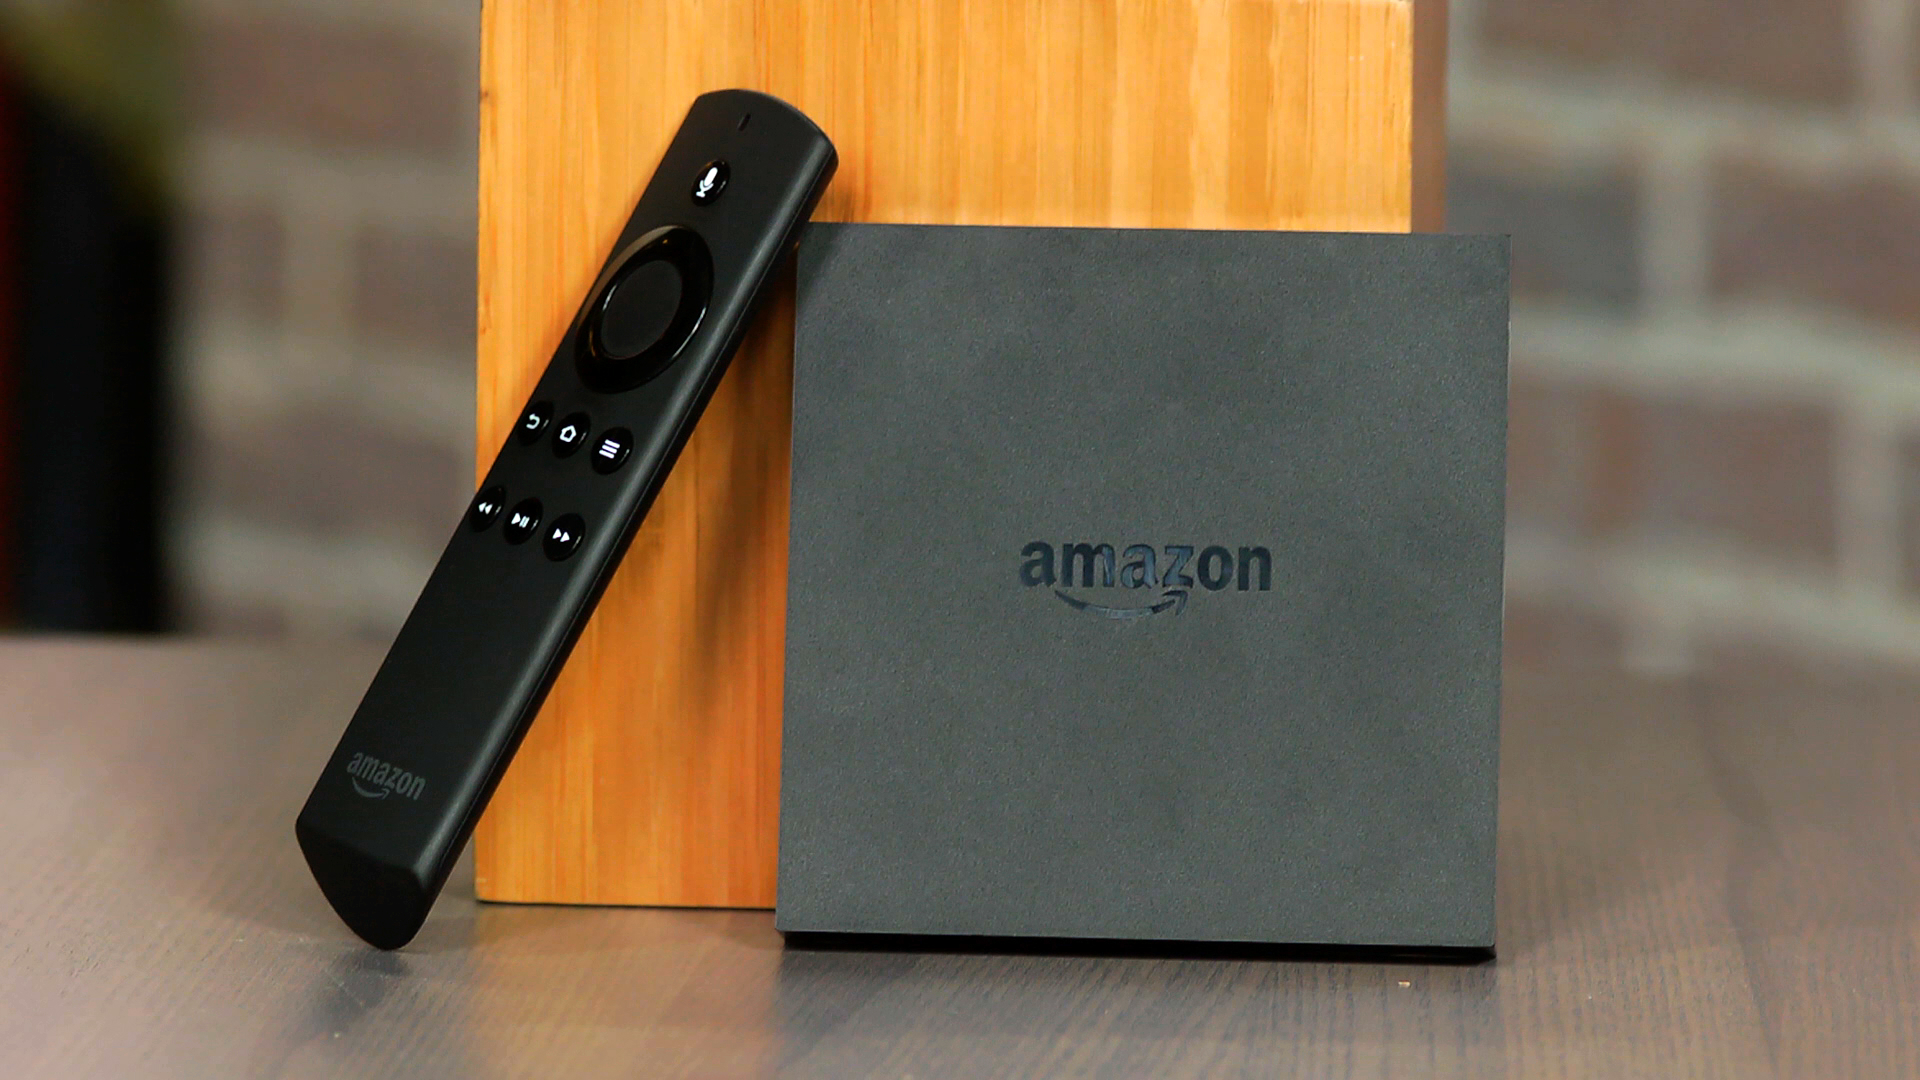 Video: Amazon Fire TV: Great for Amazon addicts but too pushy for everyone else